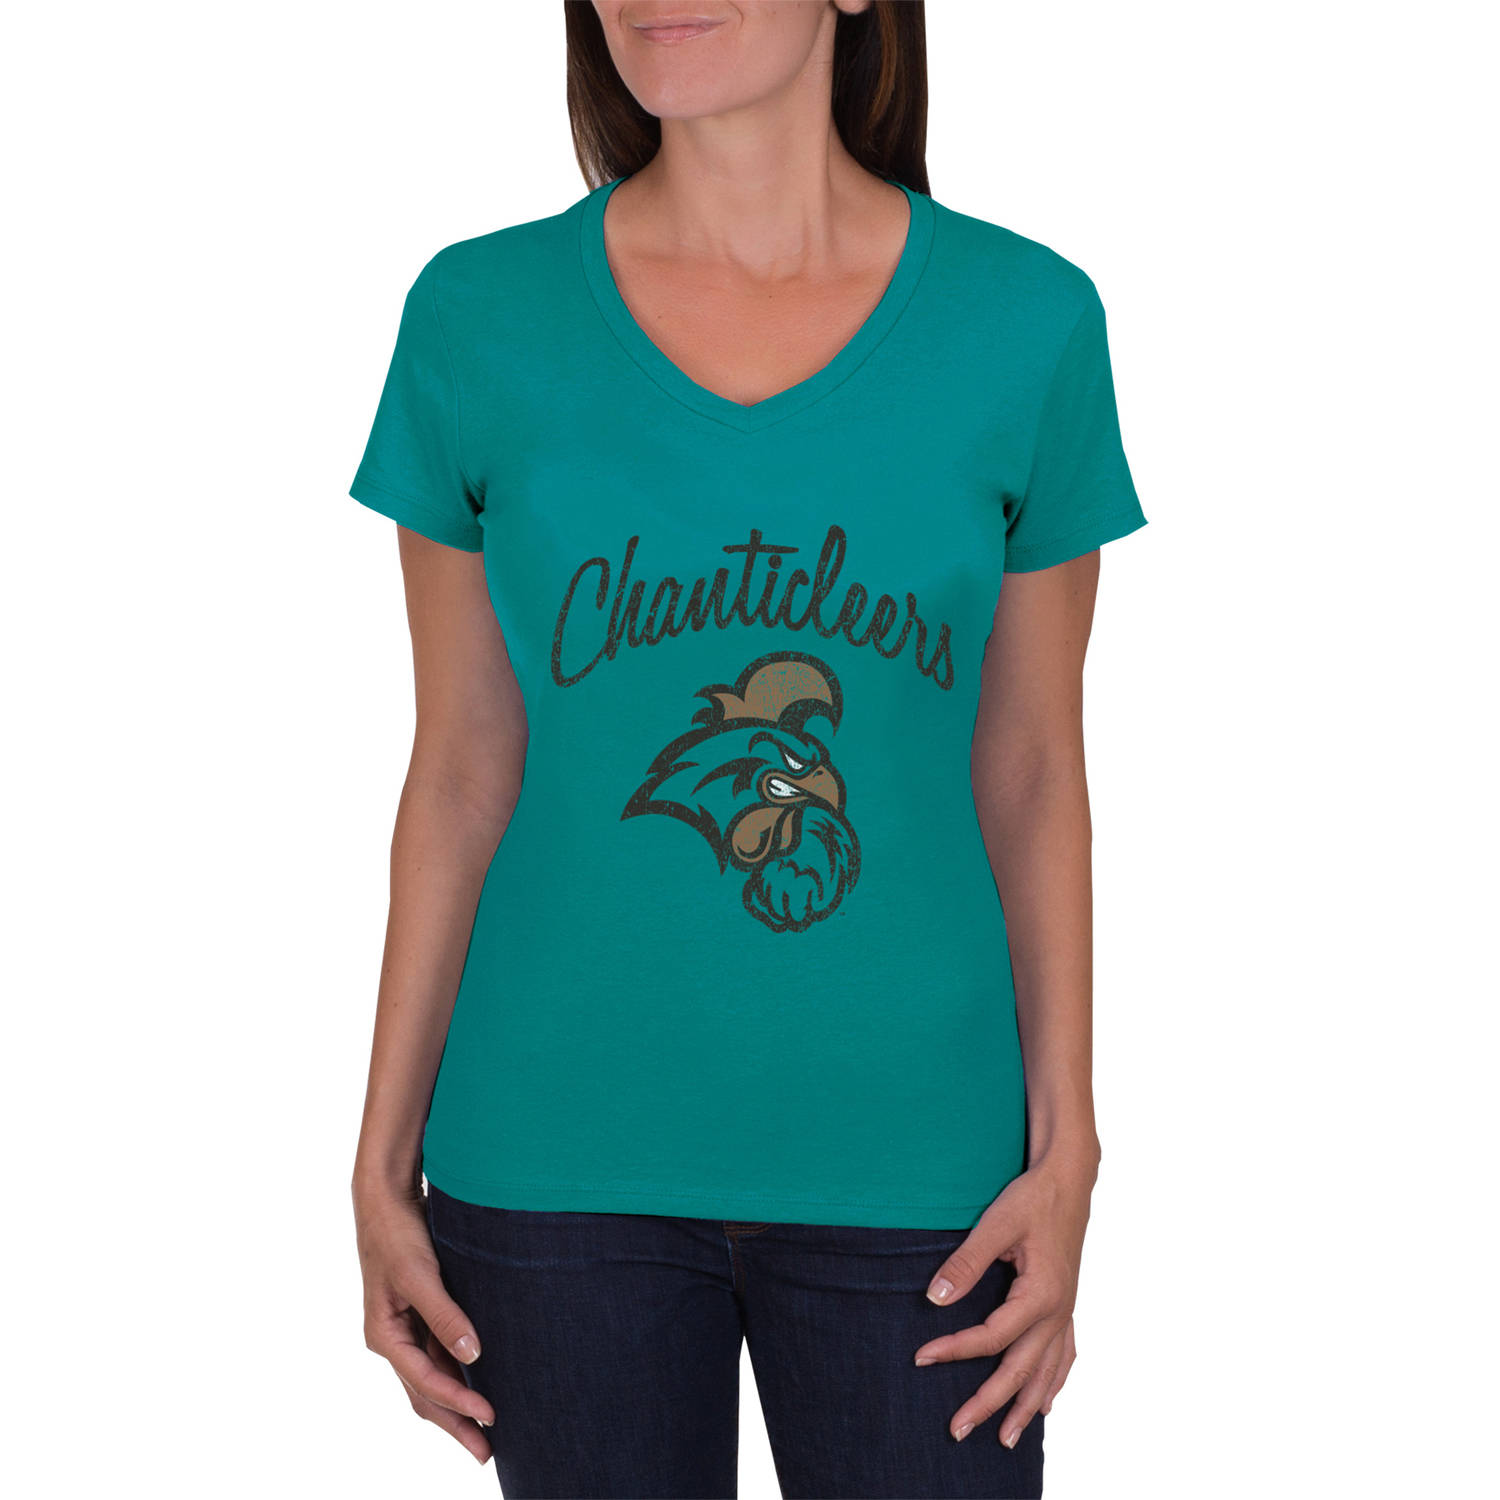 NCAA Coastal Carolina Chanticleers Women's V-Neck Tunic Cotton Tee Shirt